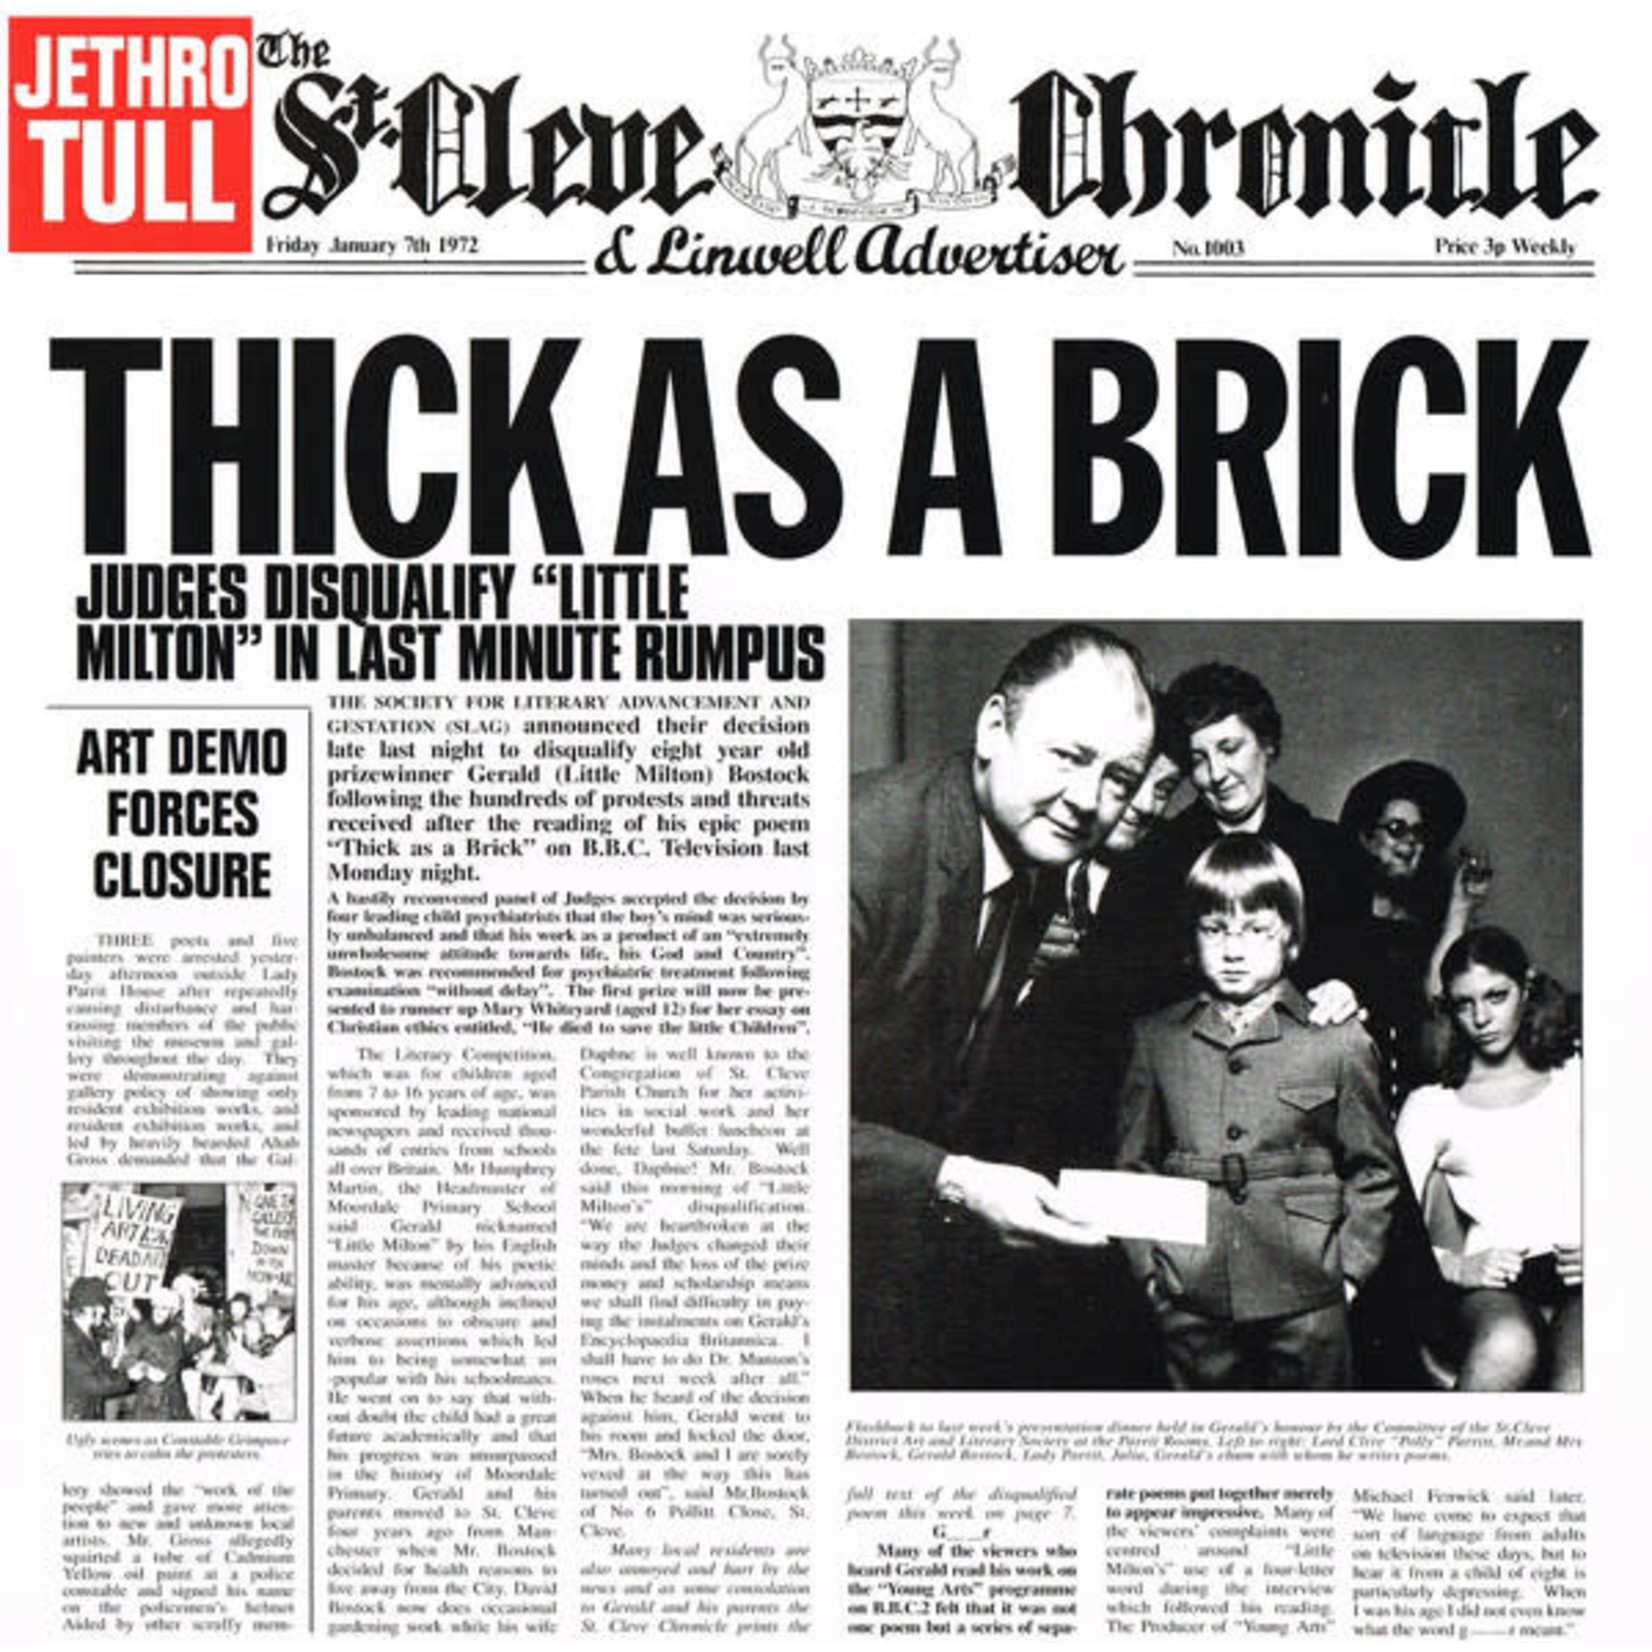 [New] Jethro Tull: Thick As A Brick